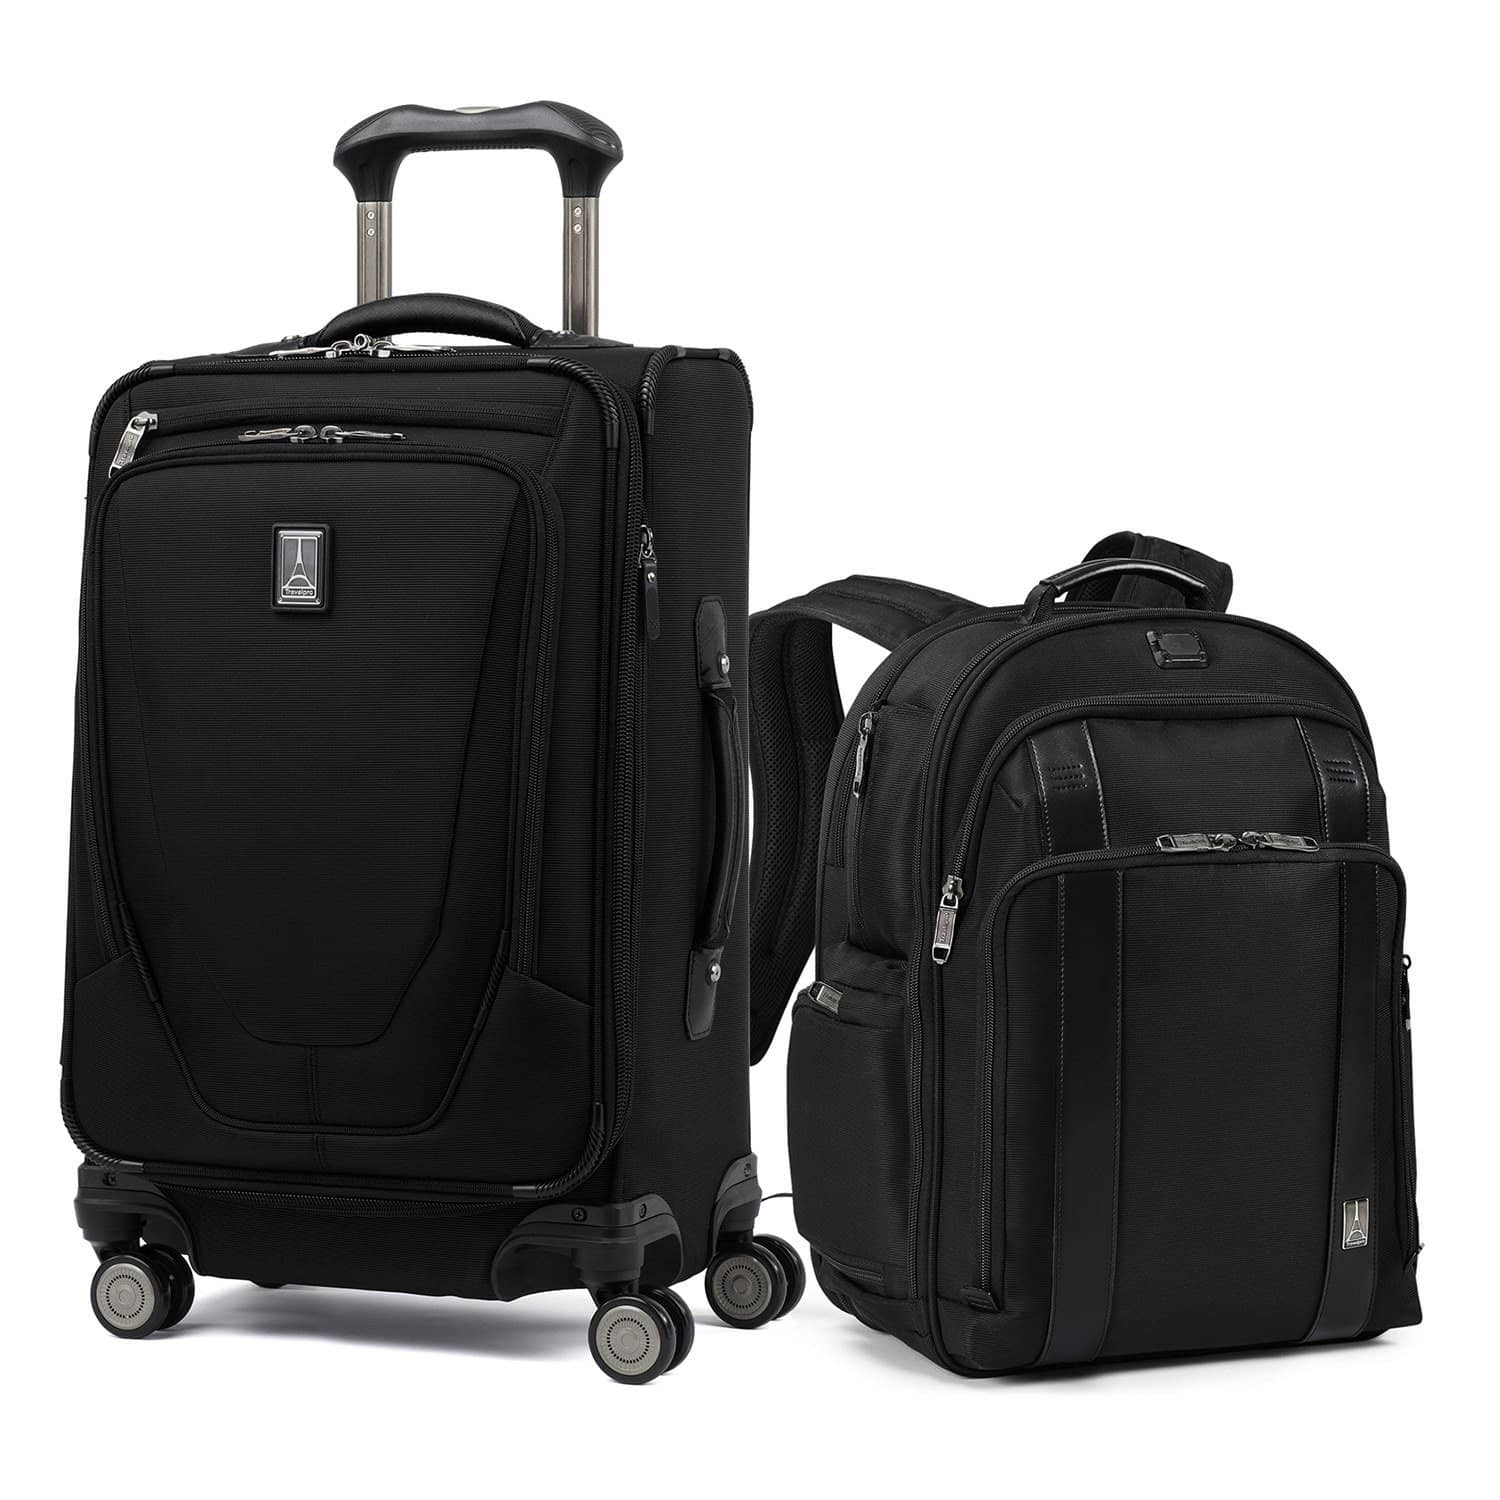 Travelpro Connected - Luggage Set black